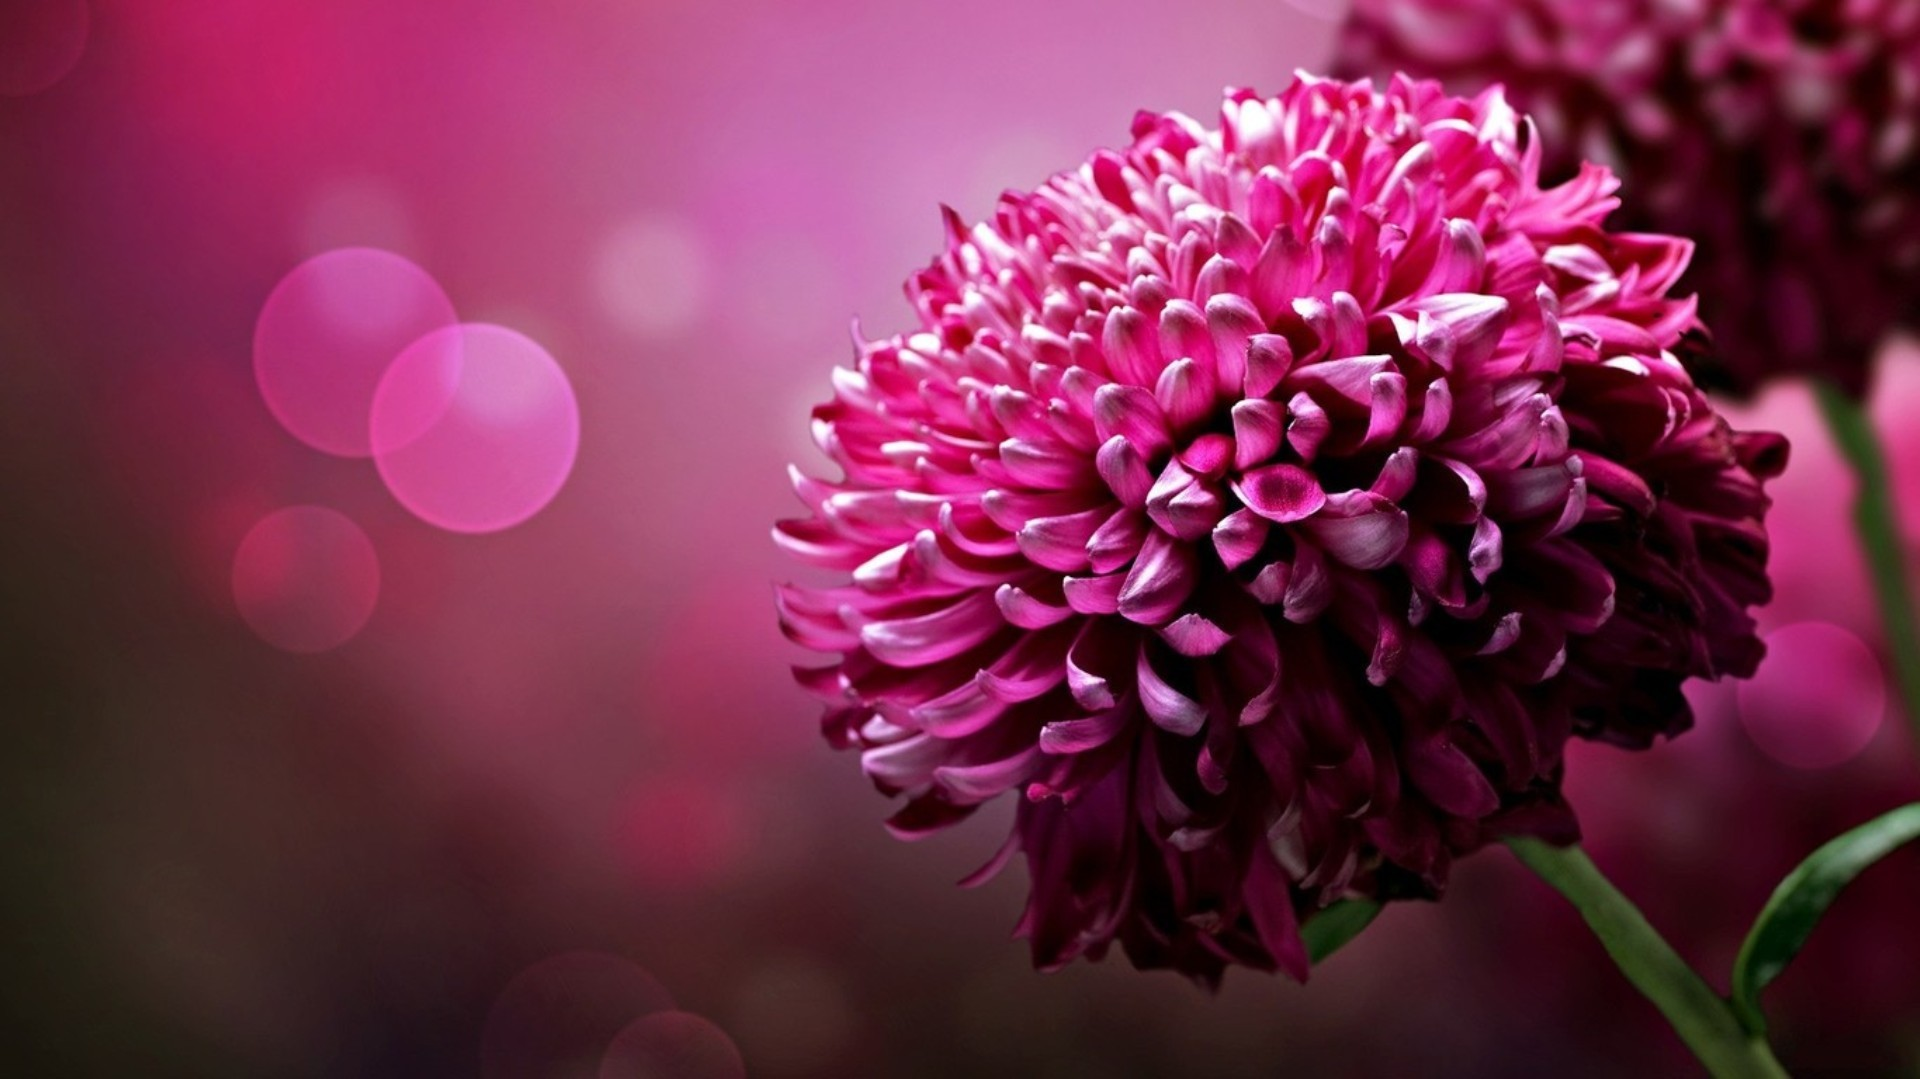 Download free HD 3D Flower Background Wallpaper, image